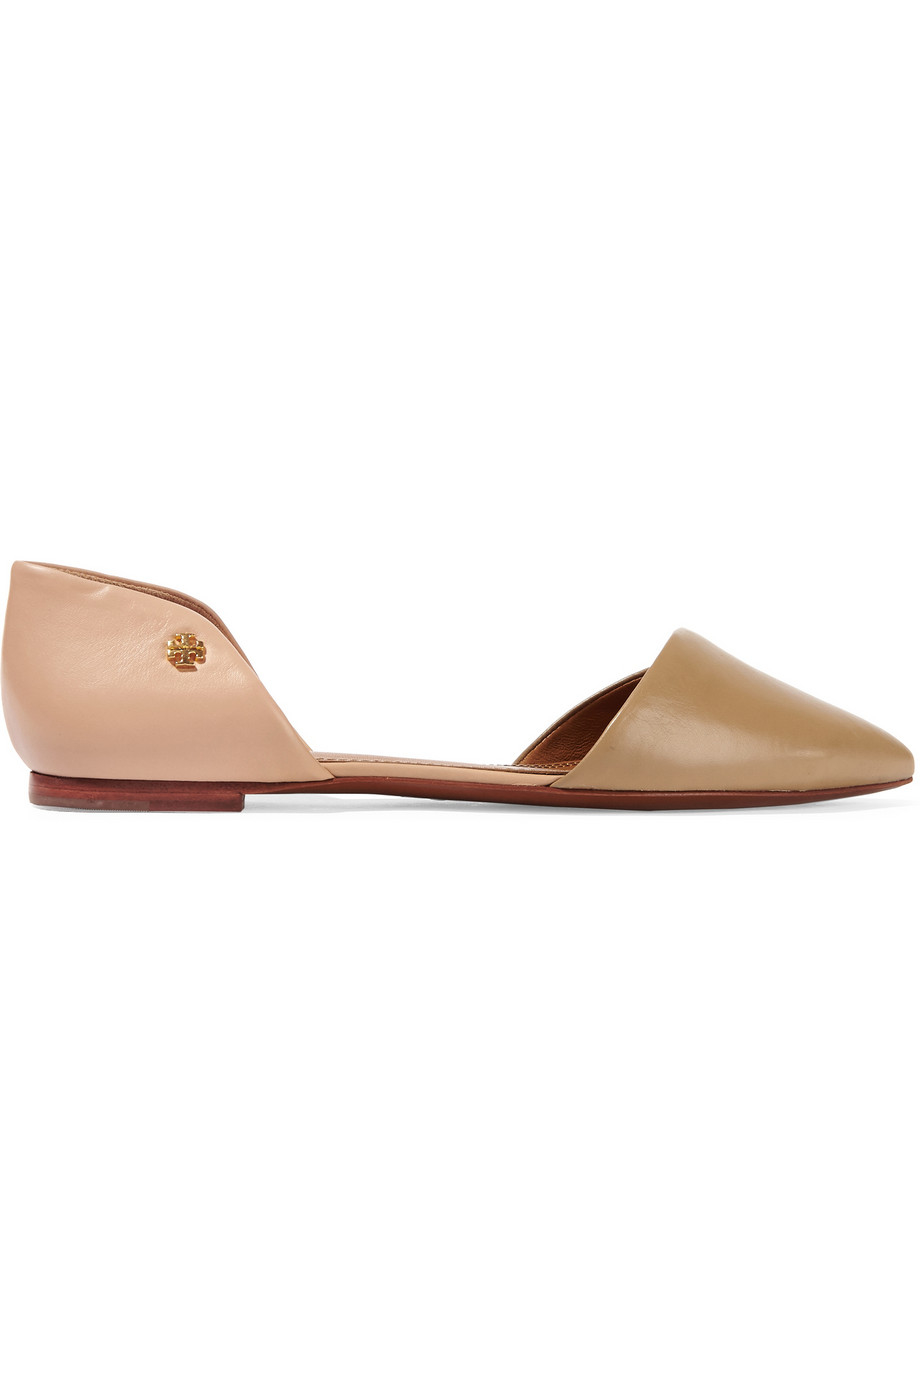 cf7e17b94a94 Tory Burch Viv Two-tone Leather Pointed-toe Flats in Natural - Lyst